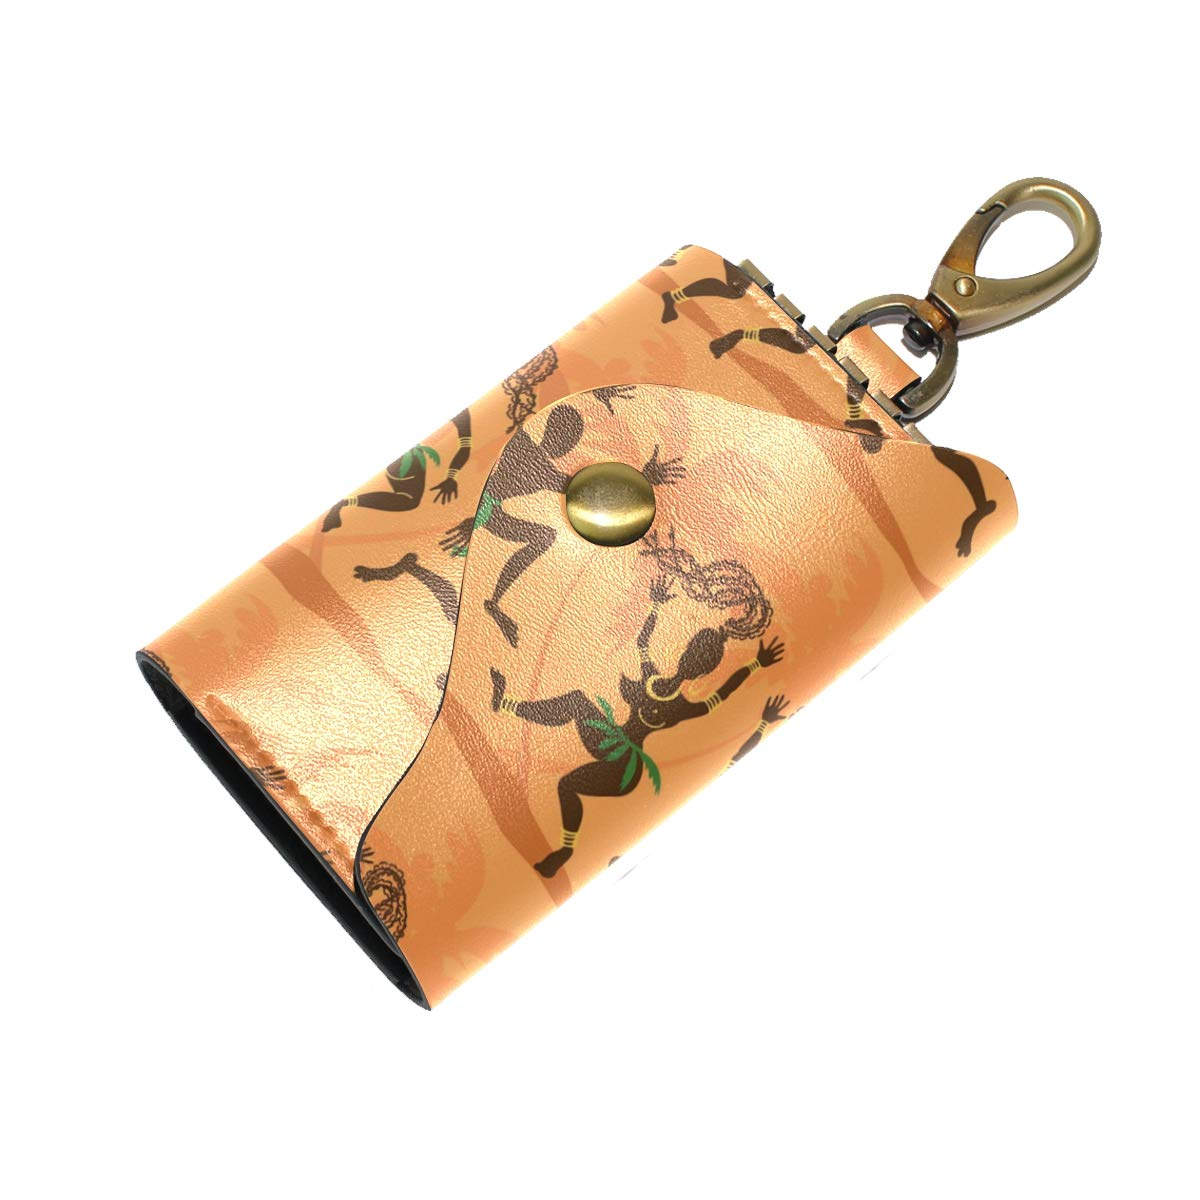 KEAKIA Dancing African Aborigines Leather Key Case Wallets Tri-fold Key Holder Keychains with 6 Hooks 2 Slot Snap Closure for Men Women